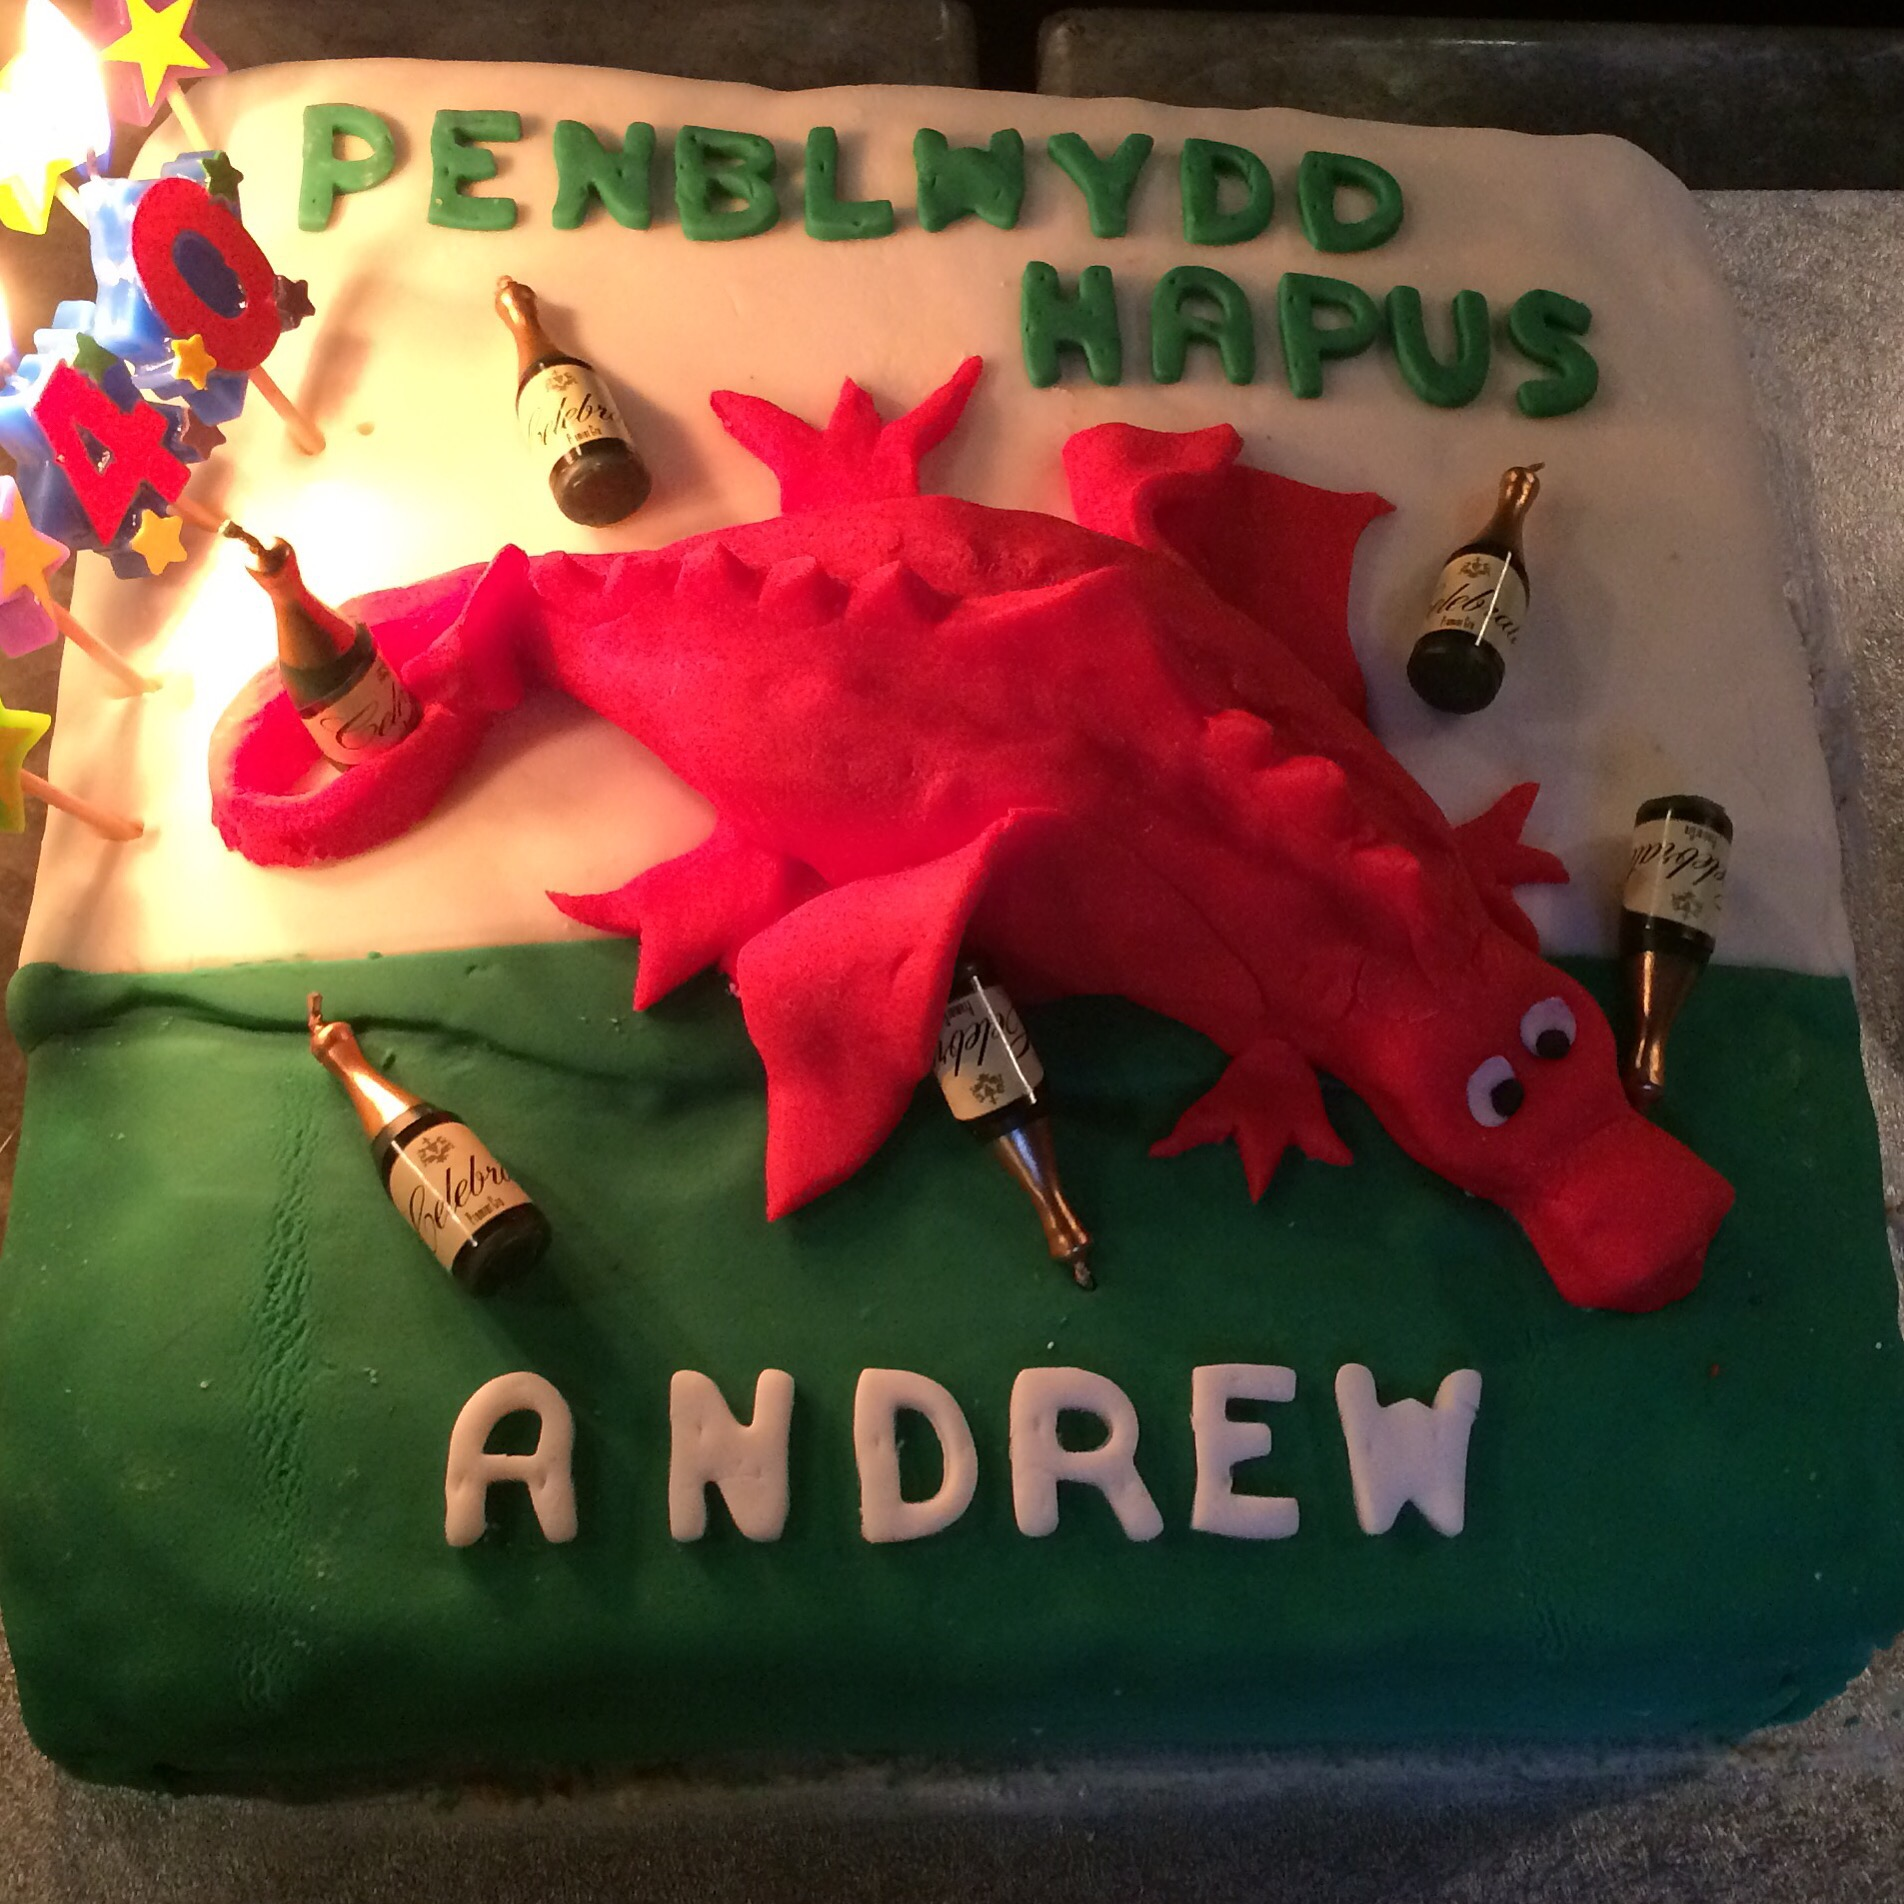 40th Birthday Cake Drunken Welsh Dragon Vanilla